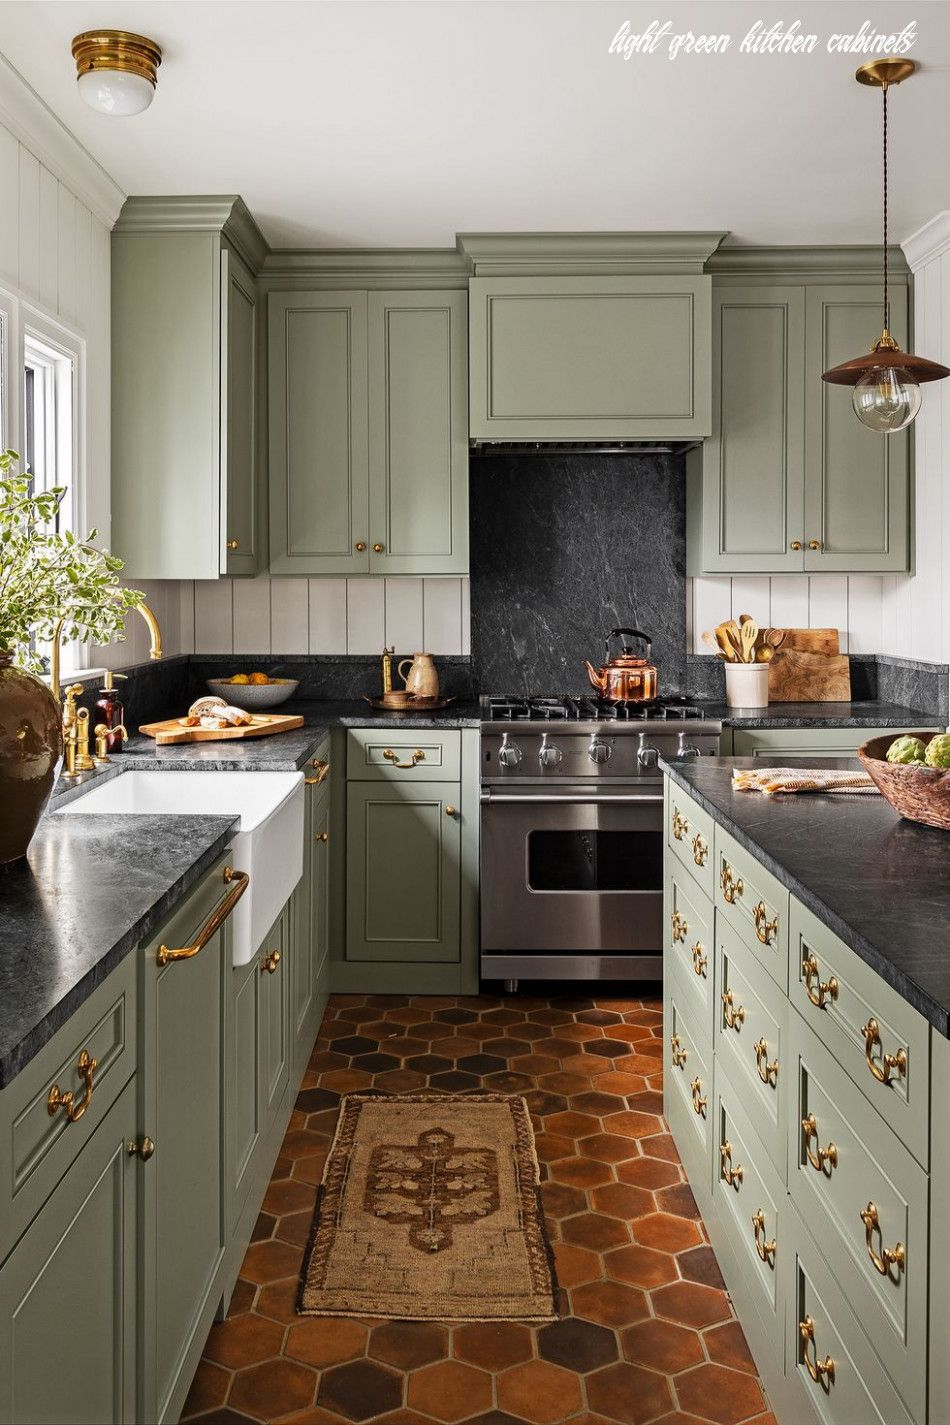 10 Reliable Sources To Learn About Light Green Kitchen Cabinets -   17 sage green kitchen cabinets ideas